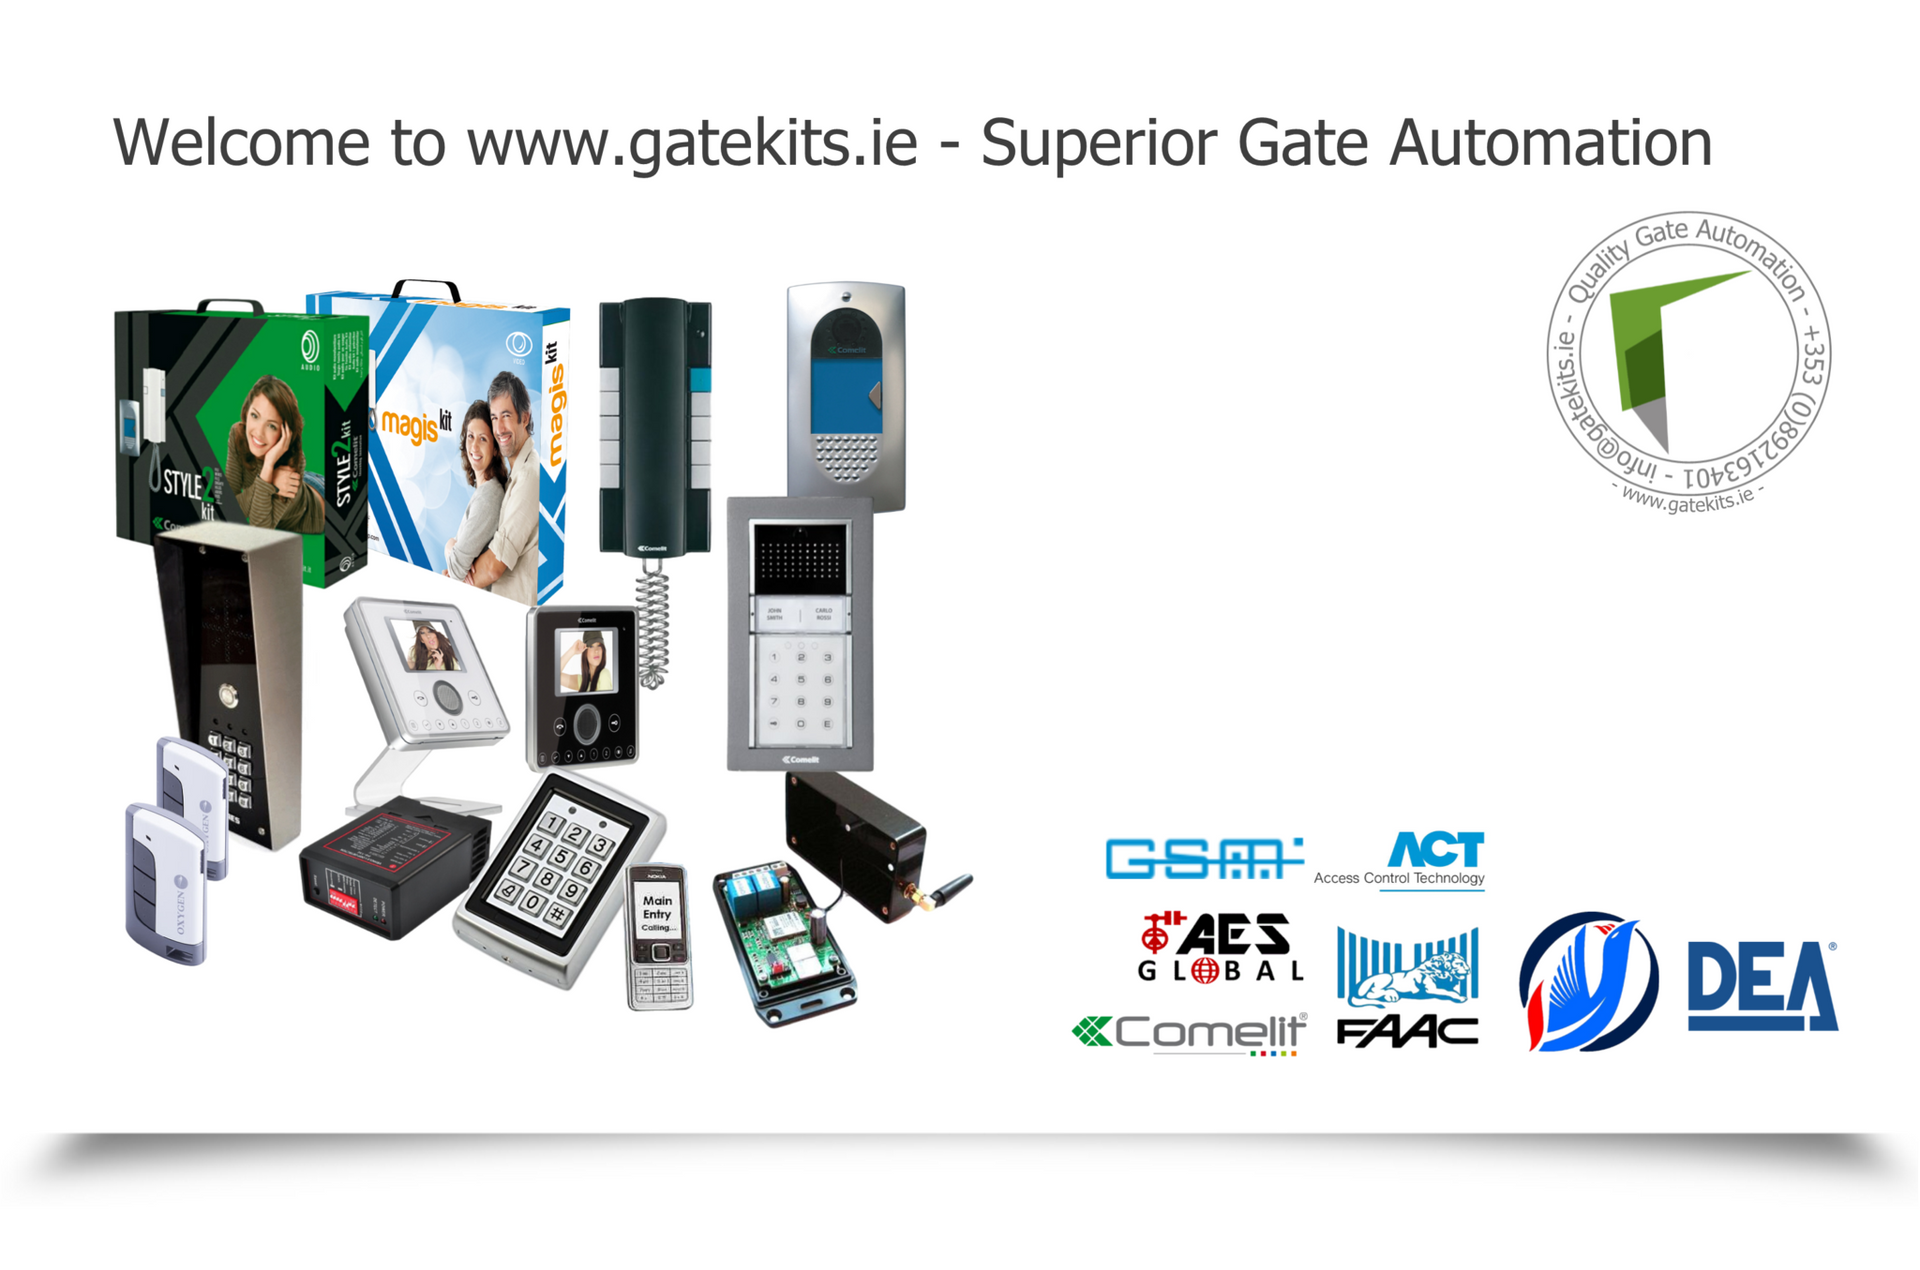 Suppliers Of Superior Gate Automation Kits Electric Relay Entry Systems